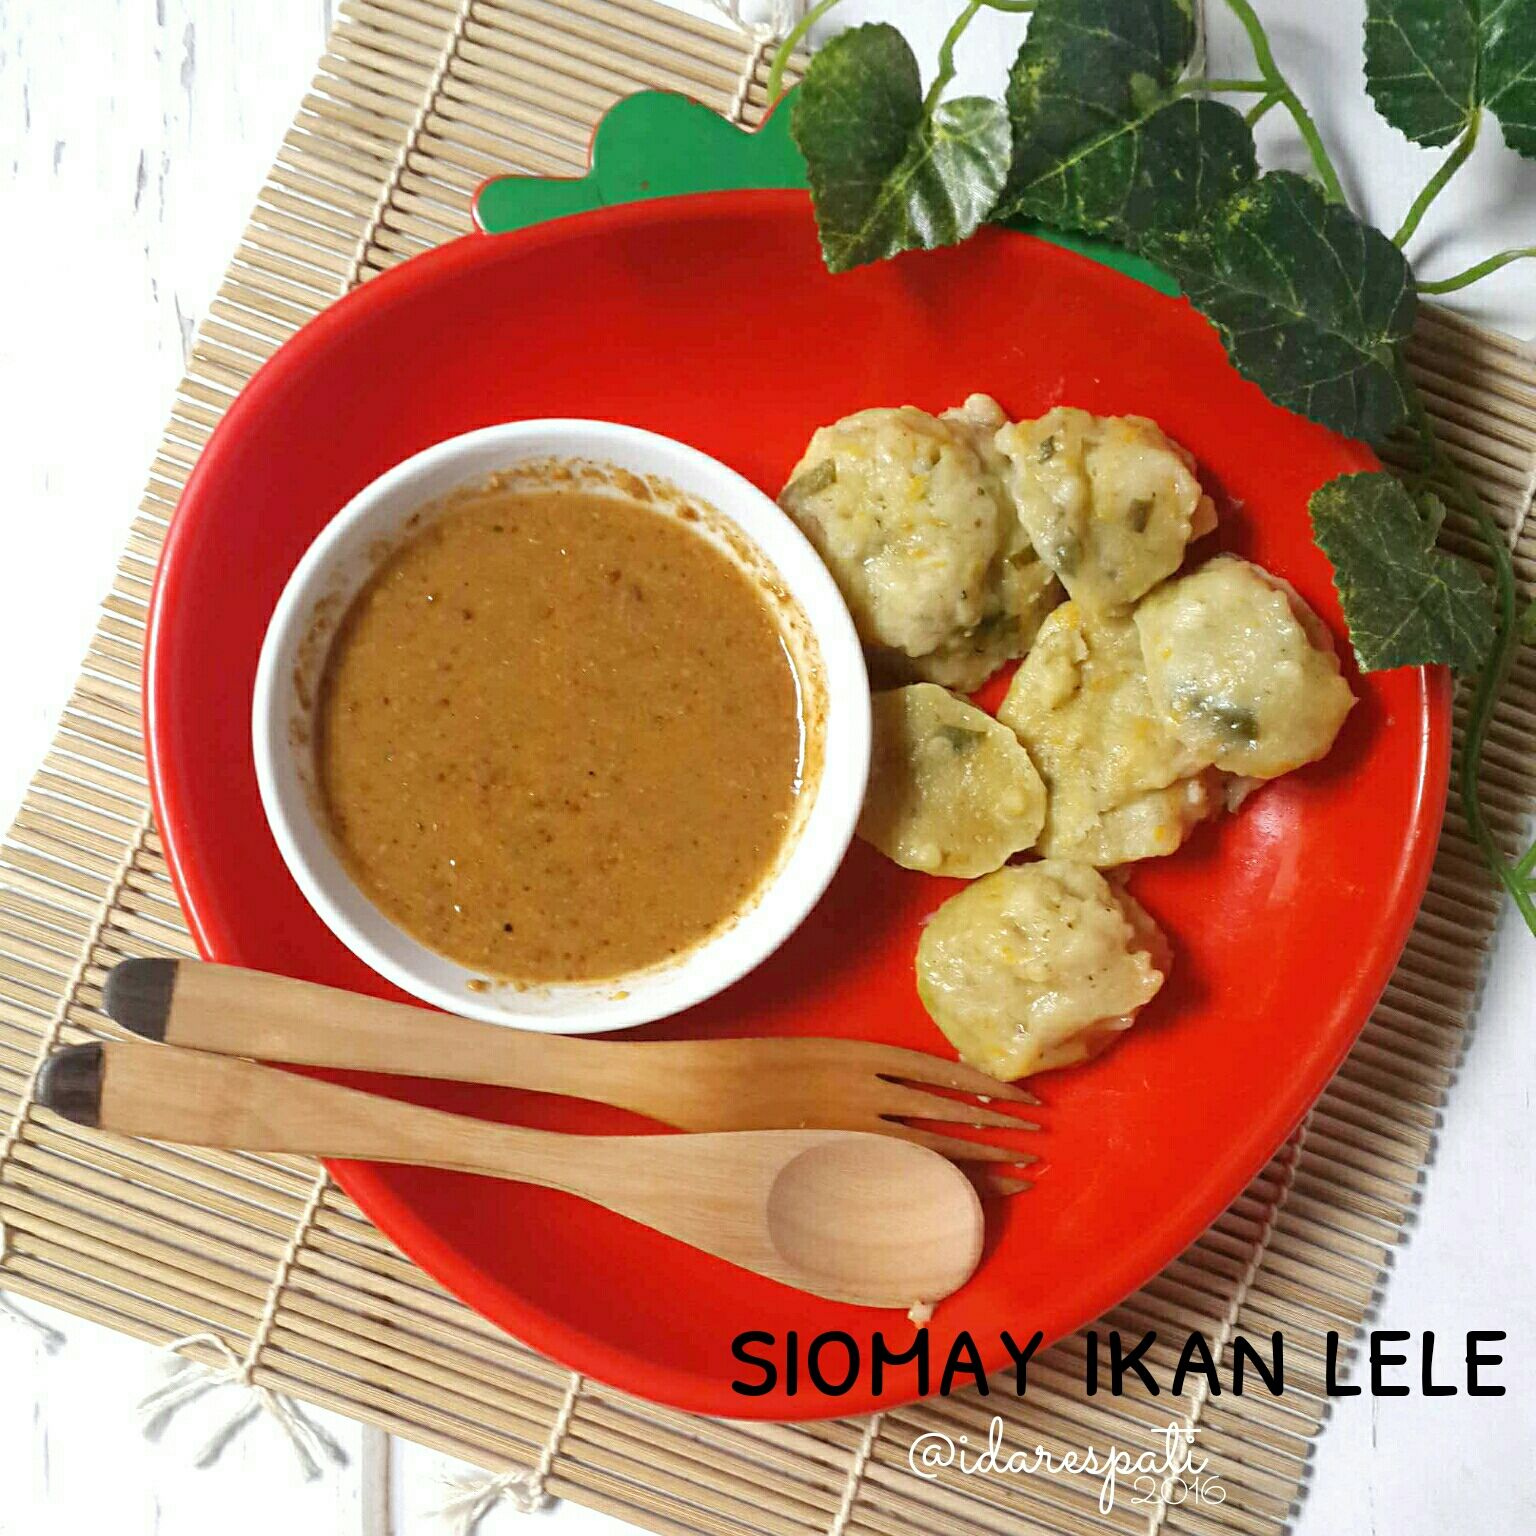 Indonesian Steamead Food Fish Siomay